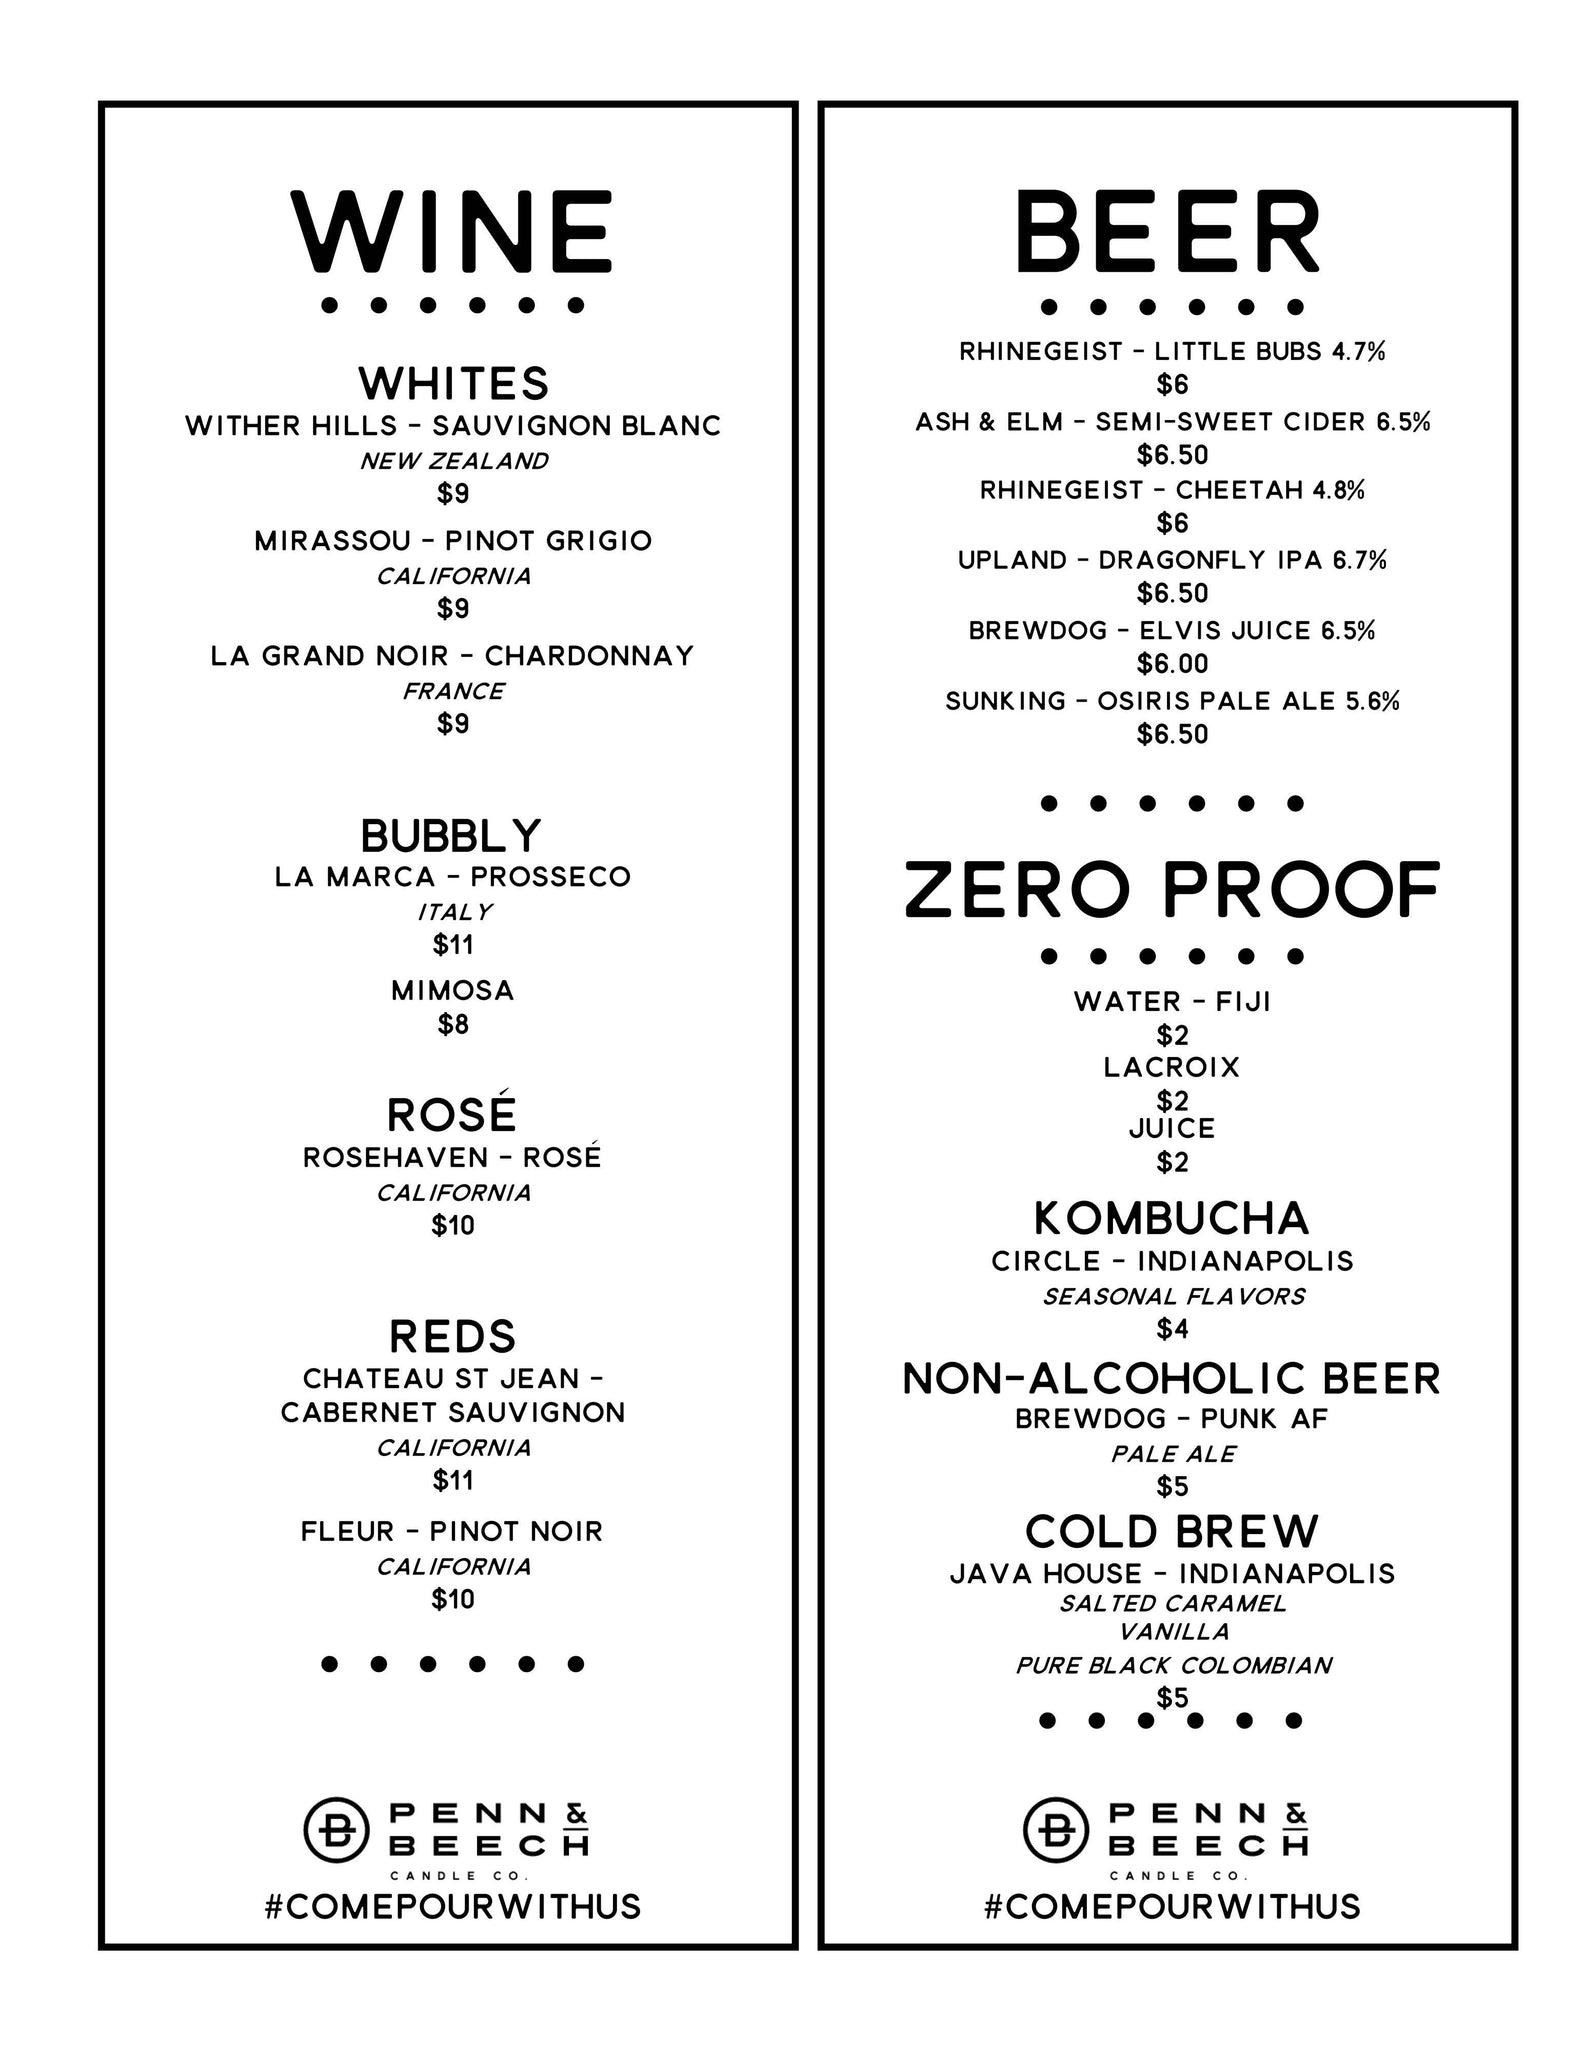 Penn and Beech beverage and drink menu